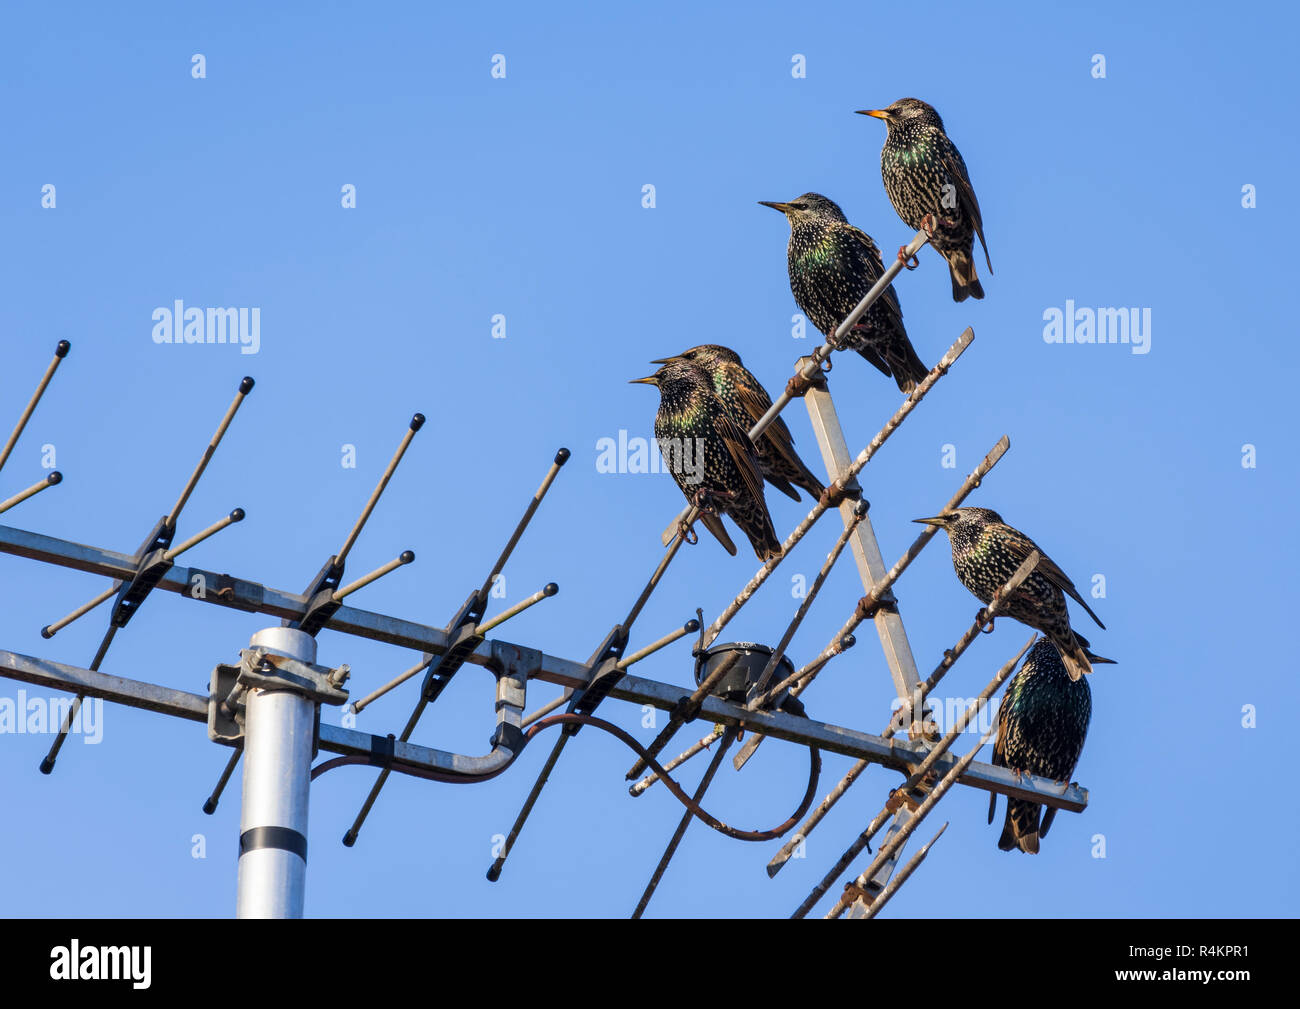 Common Starlings (Sturnus vulgaris) perched on a TV aerial (television antenna) in Autumn with blue sky in West Sussex, England, UK. - Stock Image